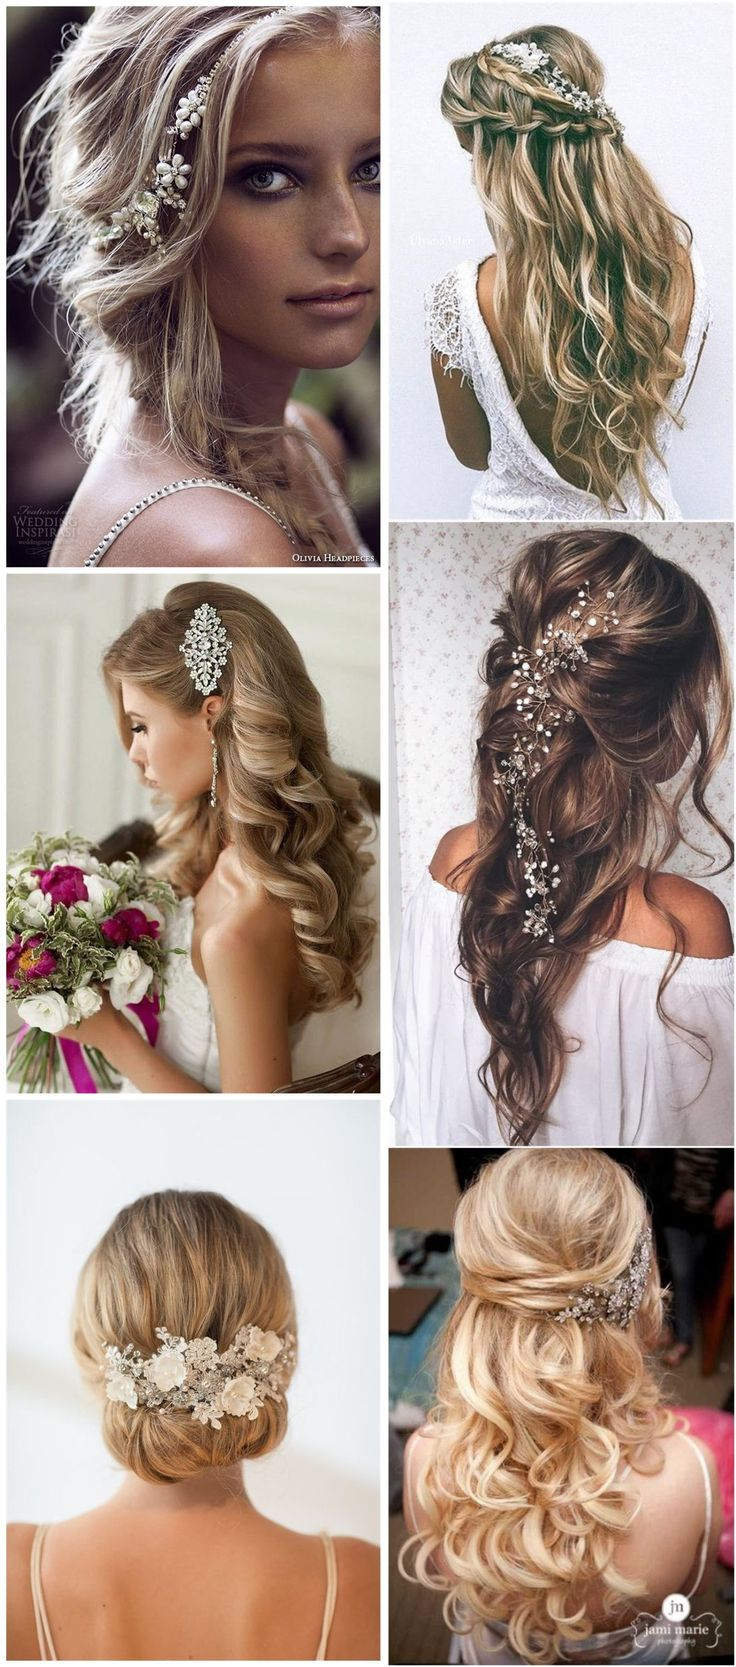 238 best bridal beaded hair accessories images on pinterest | hair